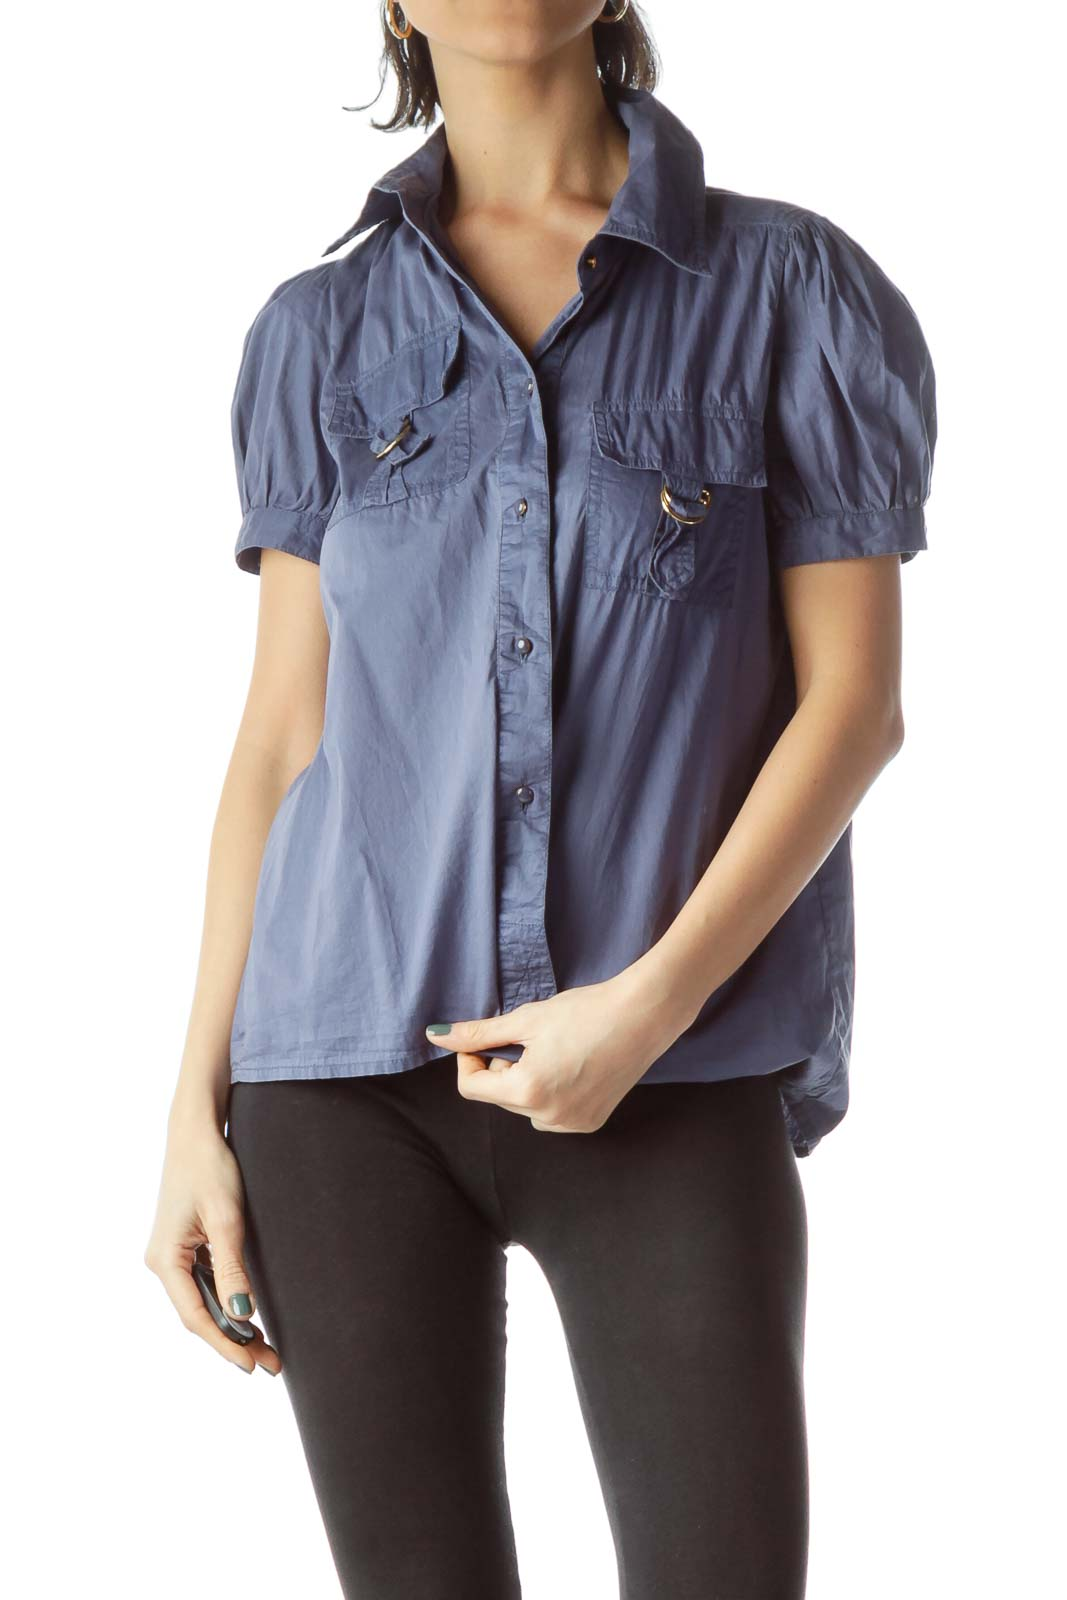 Blue Pocketed Metal Accents Short Sleeve Shirt Front